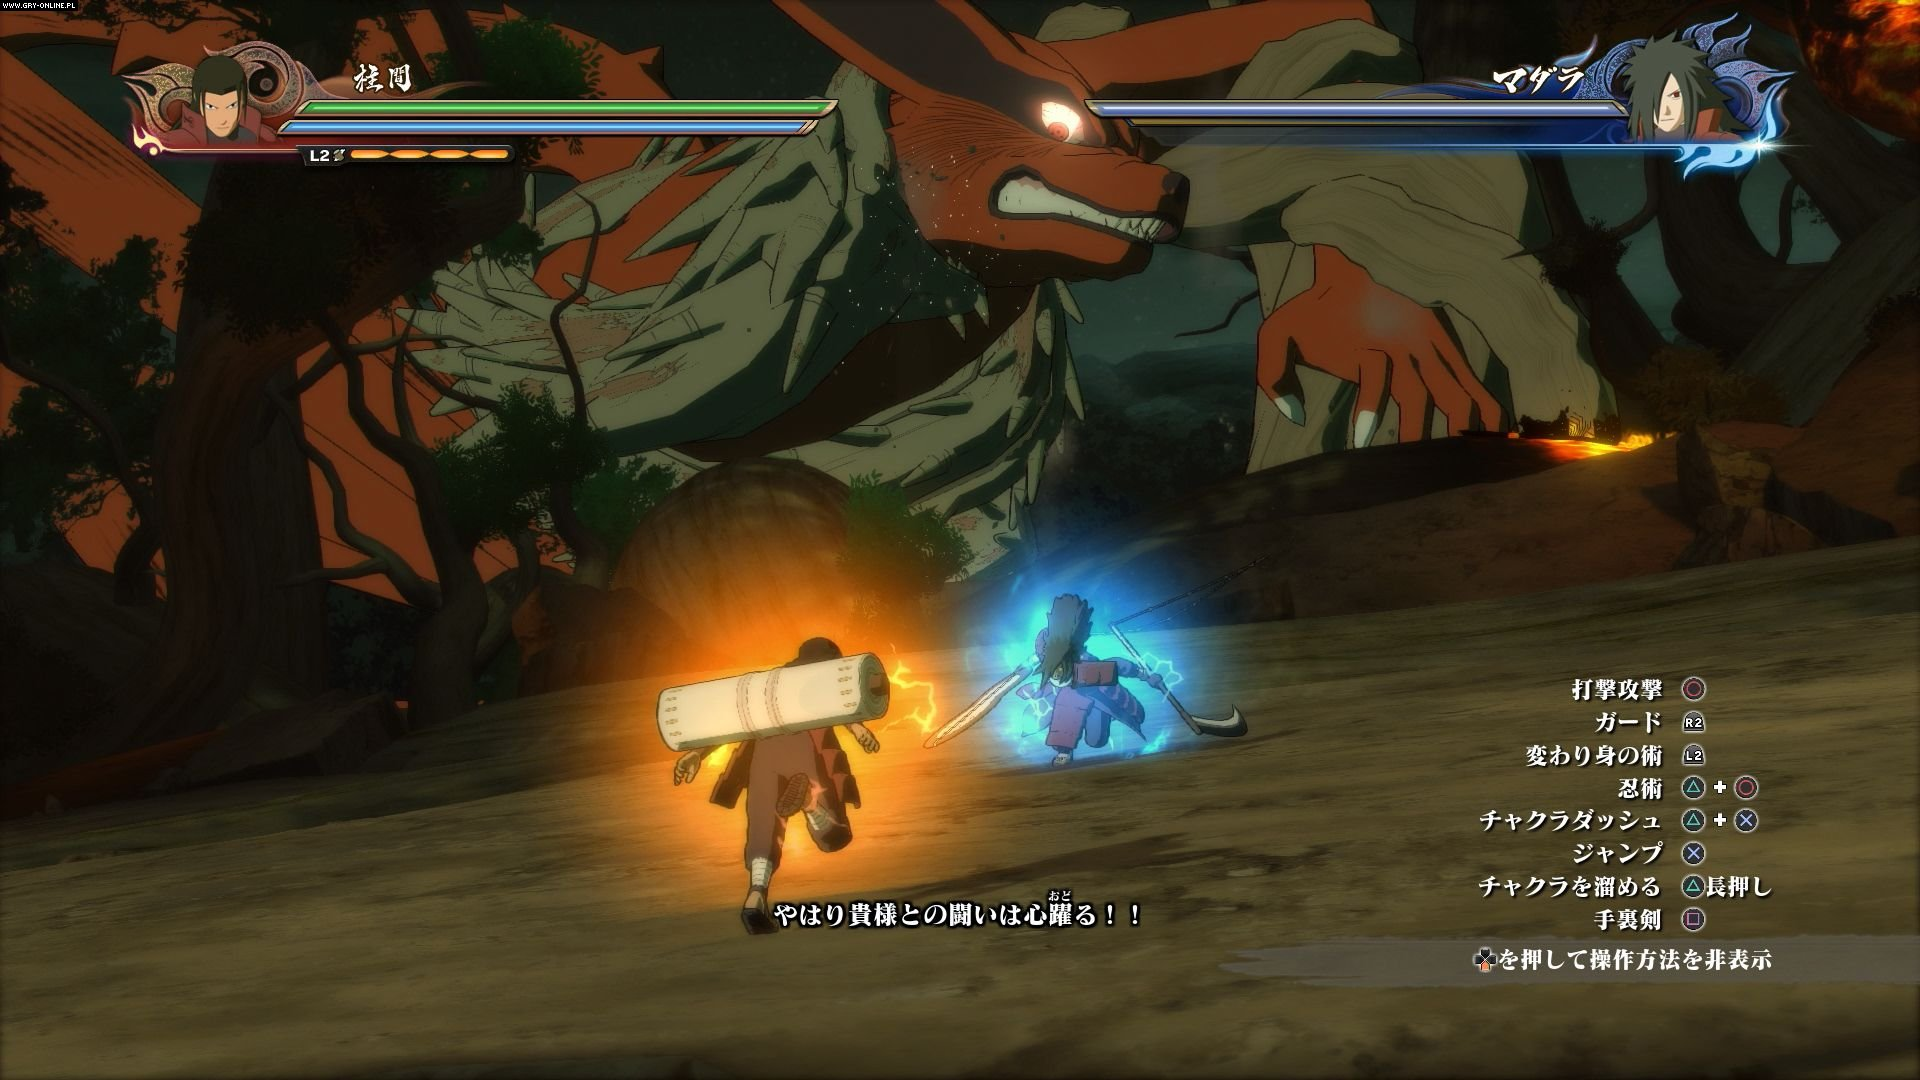 Naruto Shippuden: Ultimate Ninja Storm 4 Requisitos Minimos